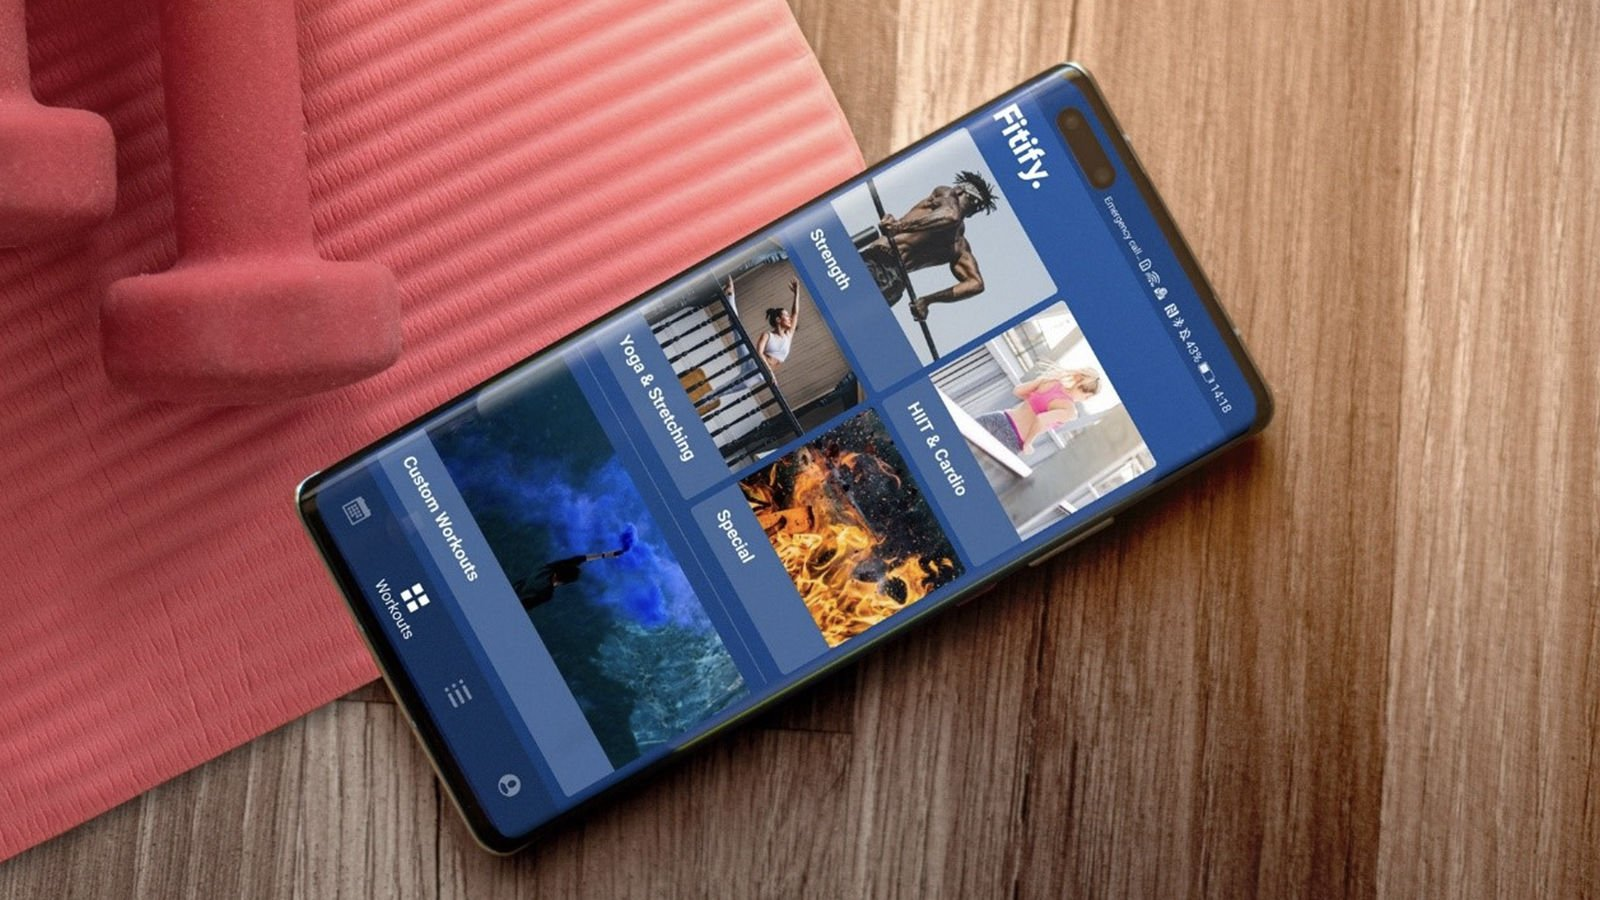 Fitify Huawei Third Party press image